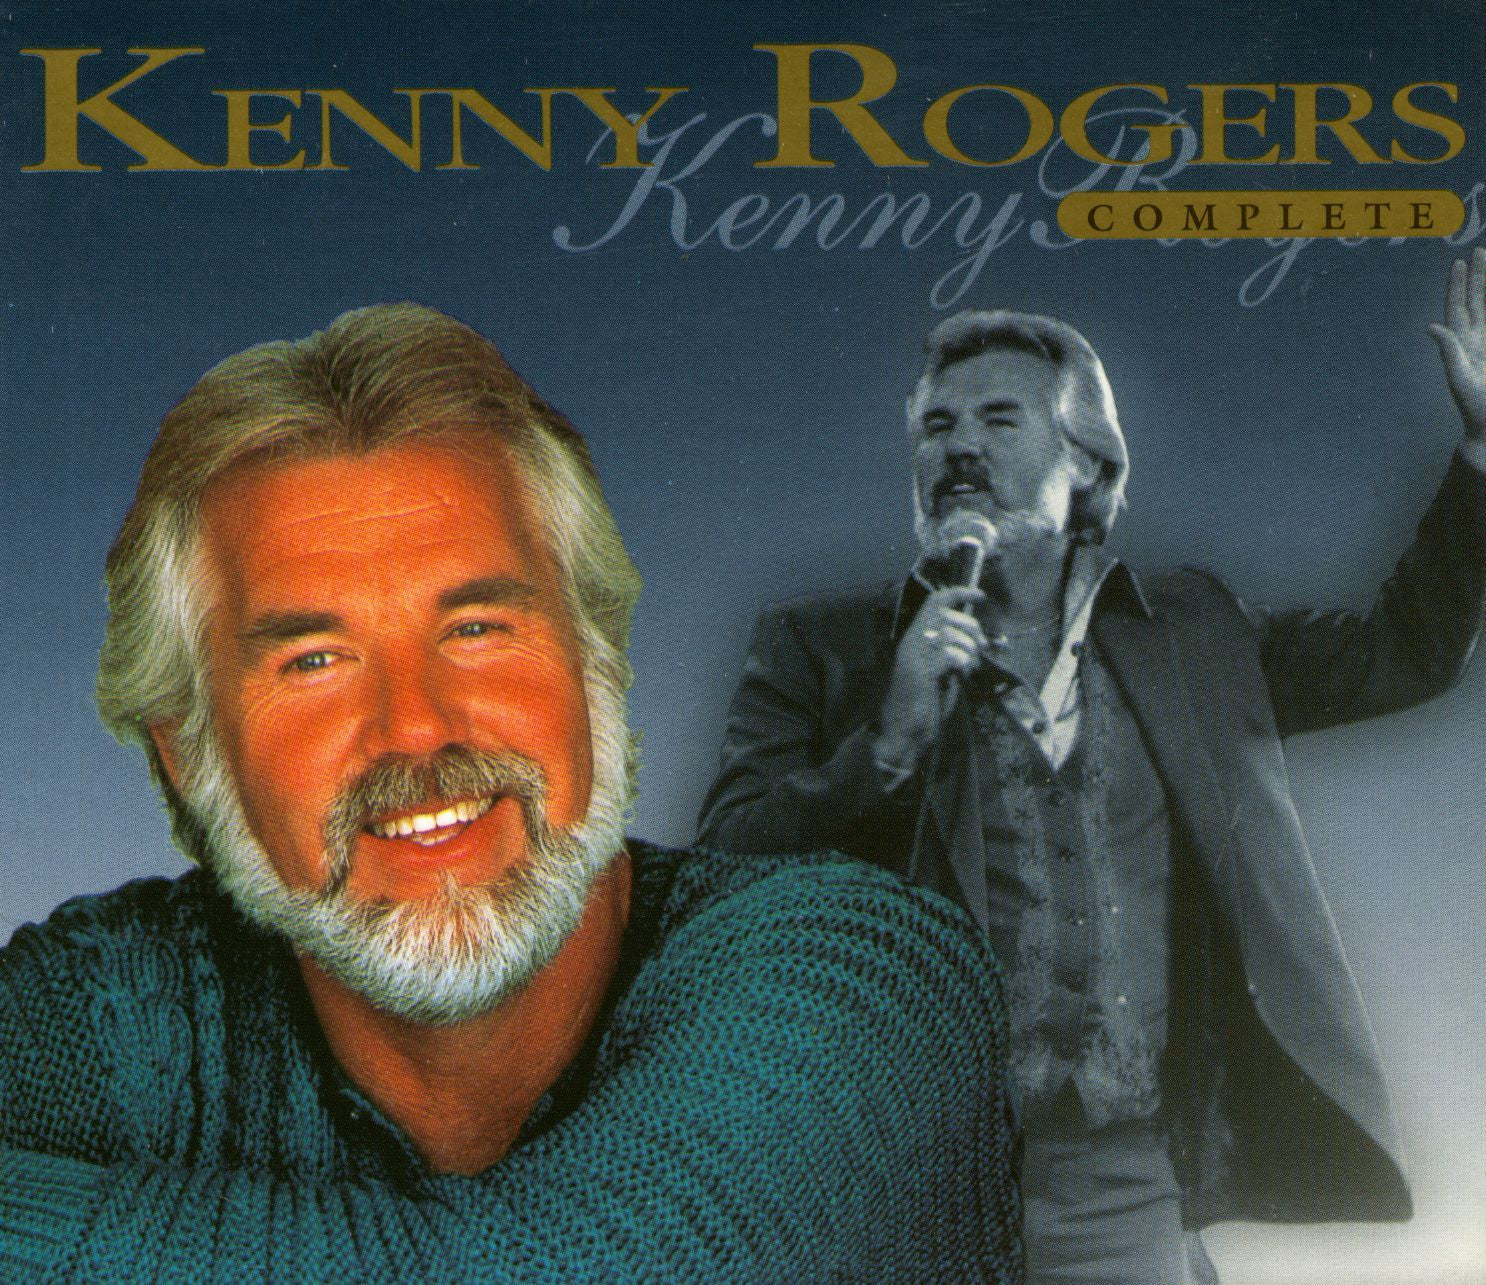 ROGERS KENNY-COMPLETE KENNY ROGERS 5CD VG | RELICS MUSIC